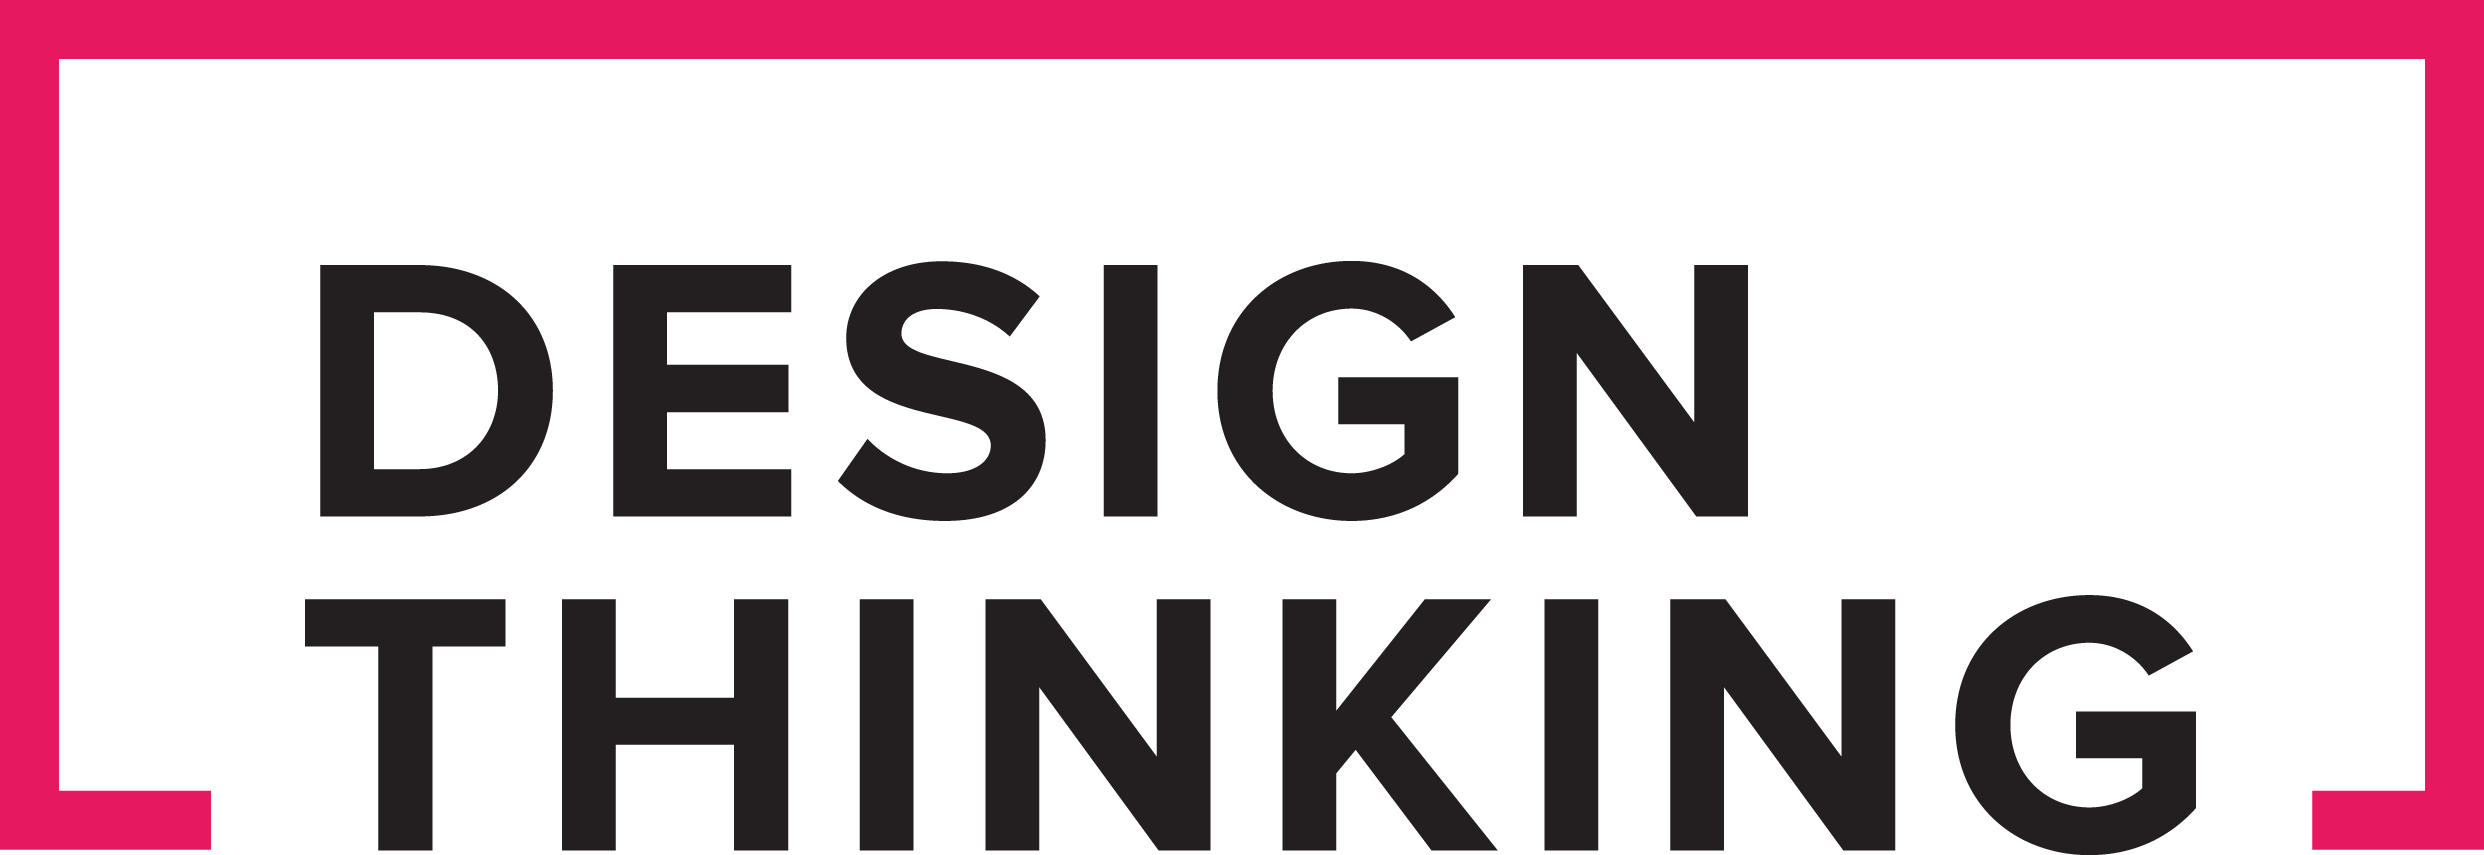 Design Thinking 2020 | The #1 Event for Design, CX, UX